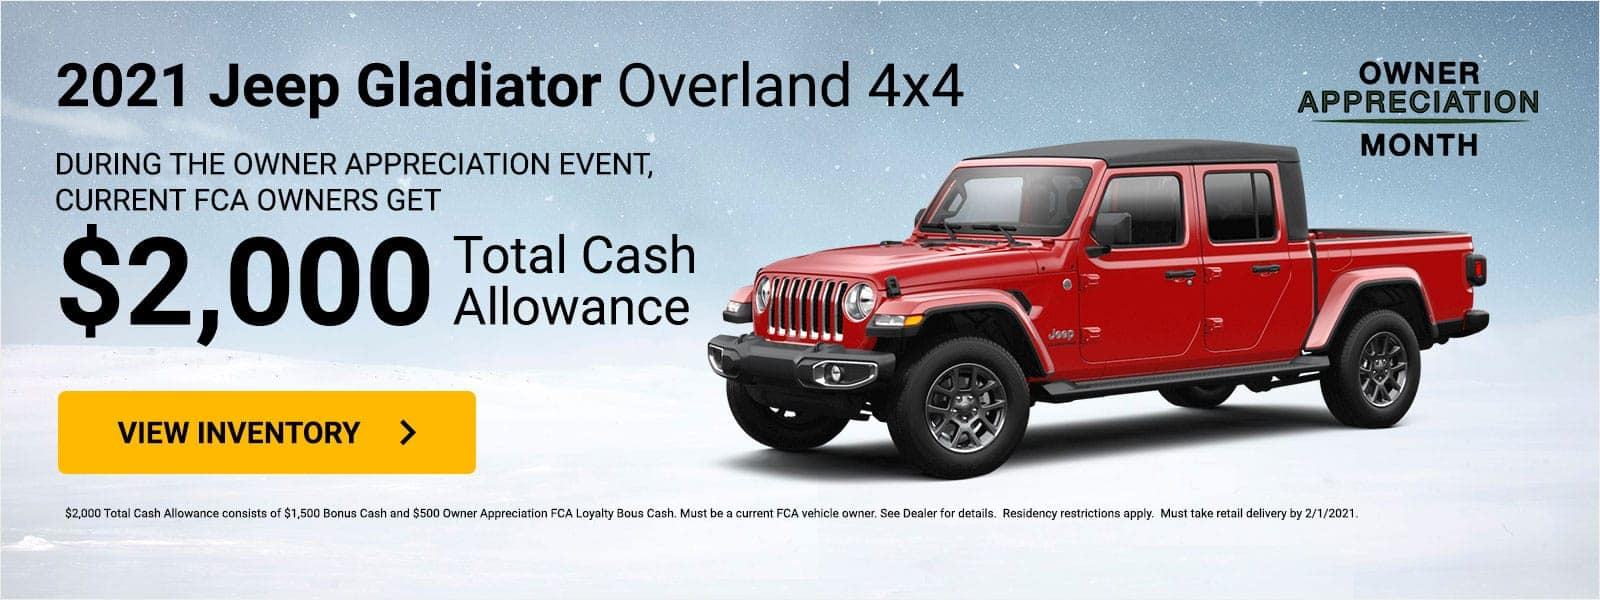 jeep-Gladiator-Overland-4x4 RETAIL